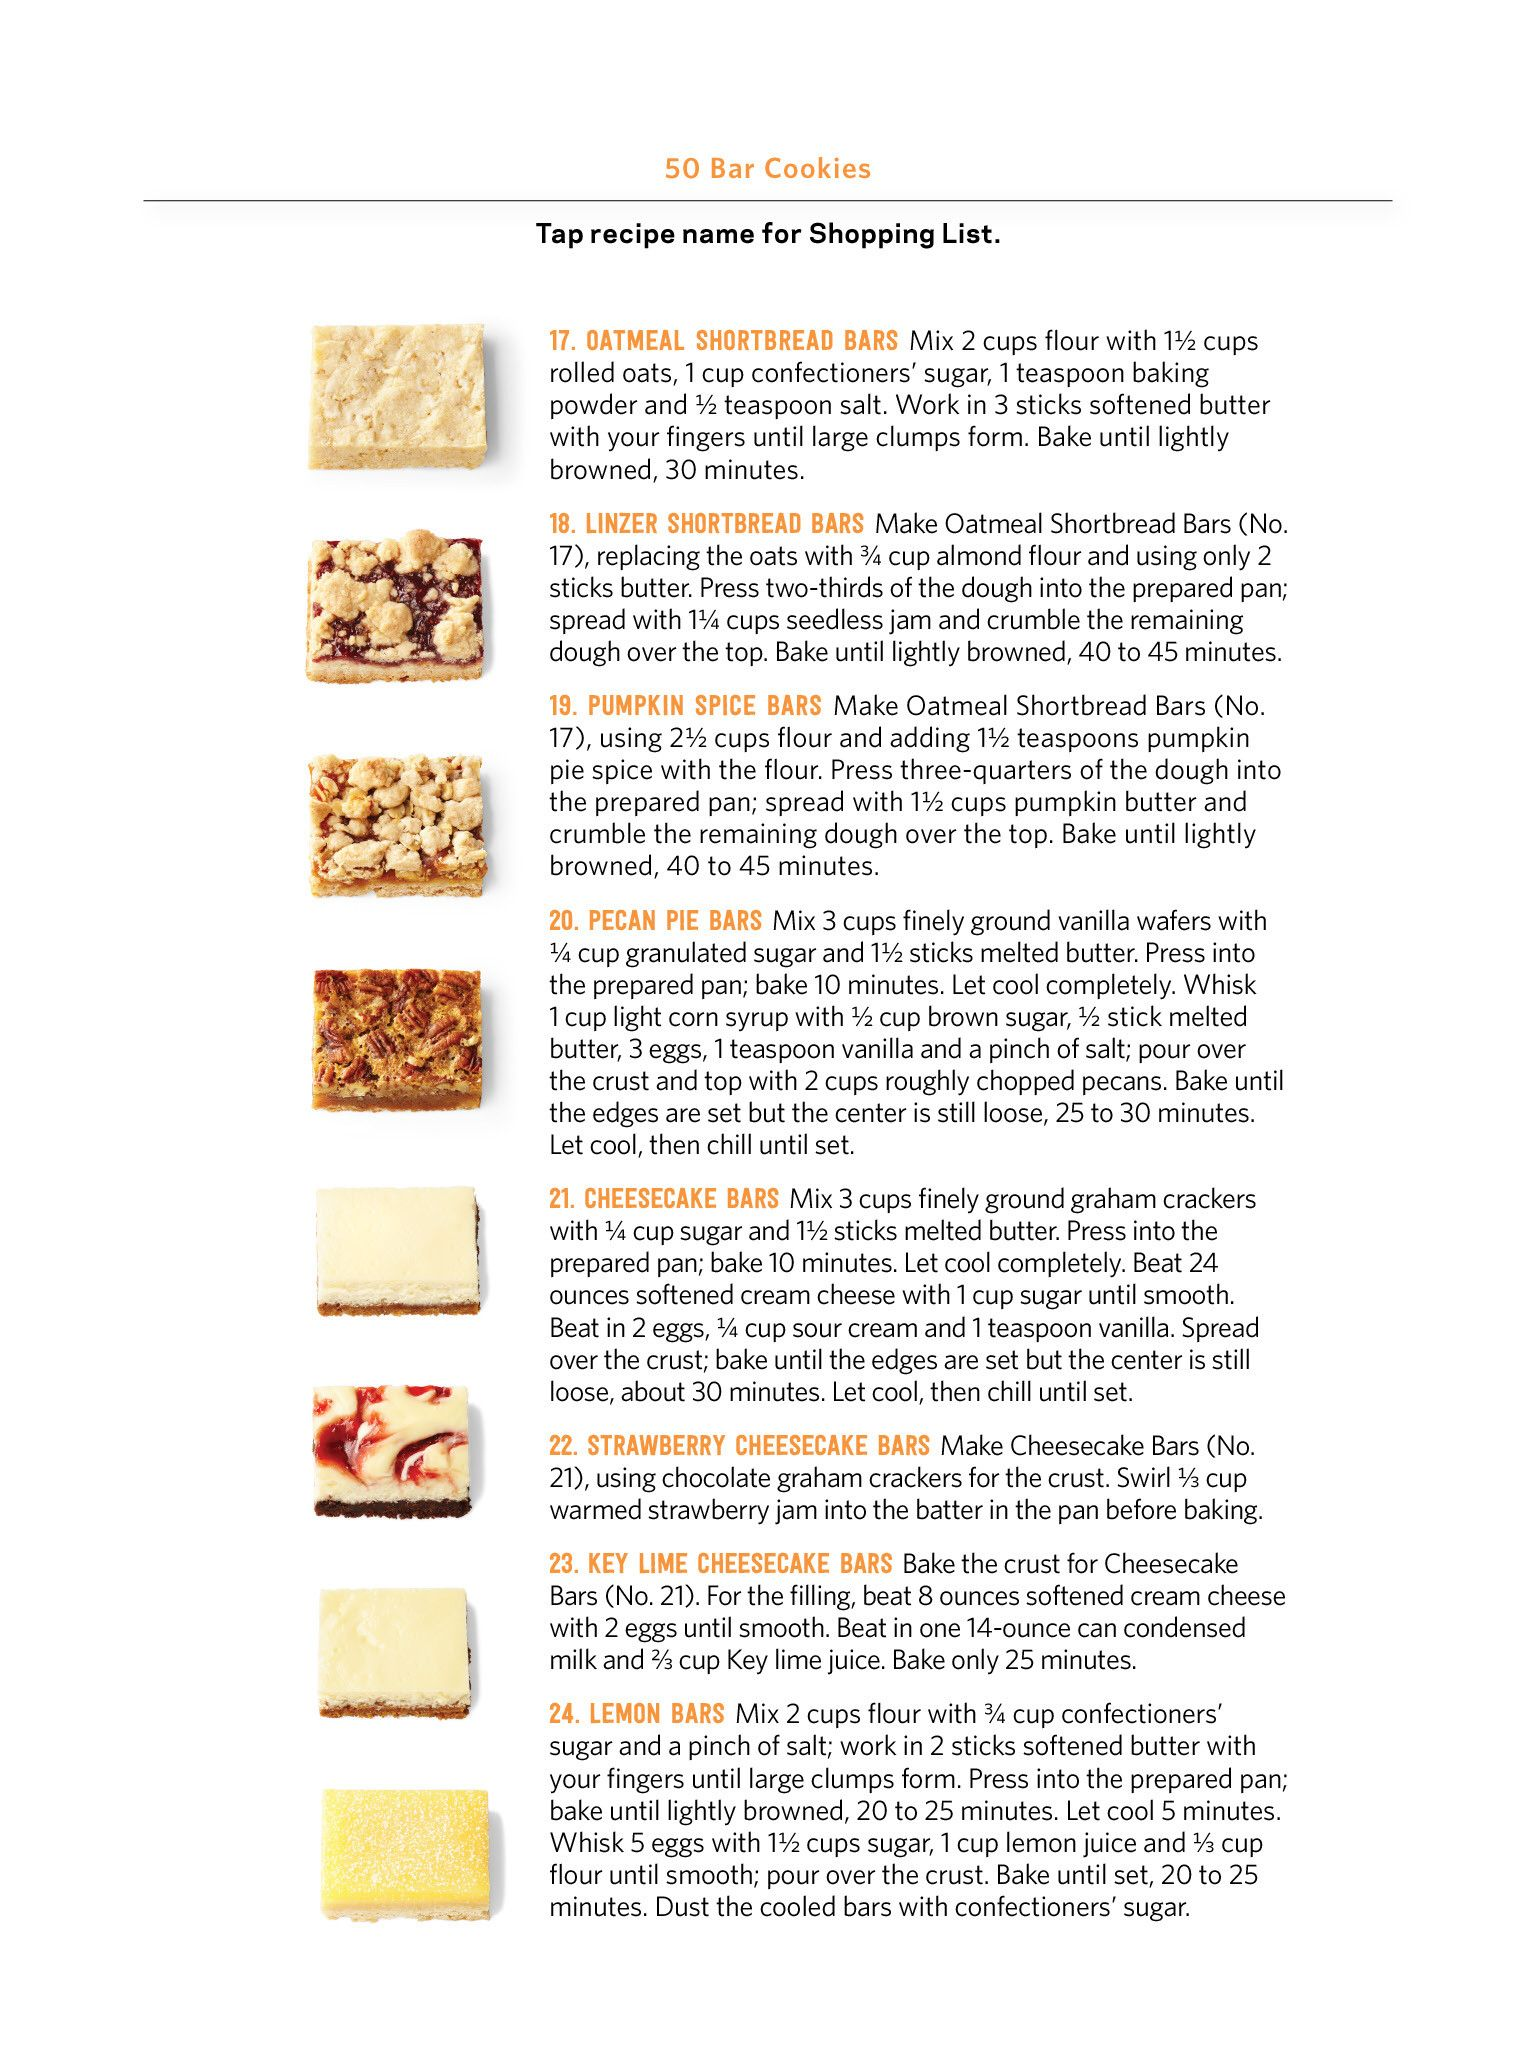 50 bar cookies from food network magazine september 2015 read it 50 bar cookies from food network magazine september 2015 read it on forumfinder Images